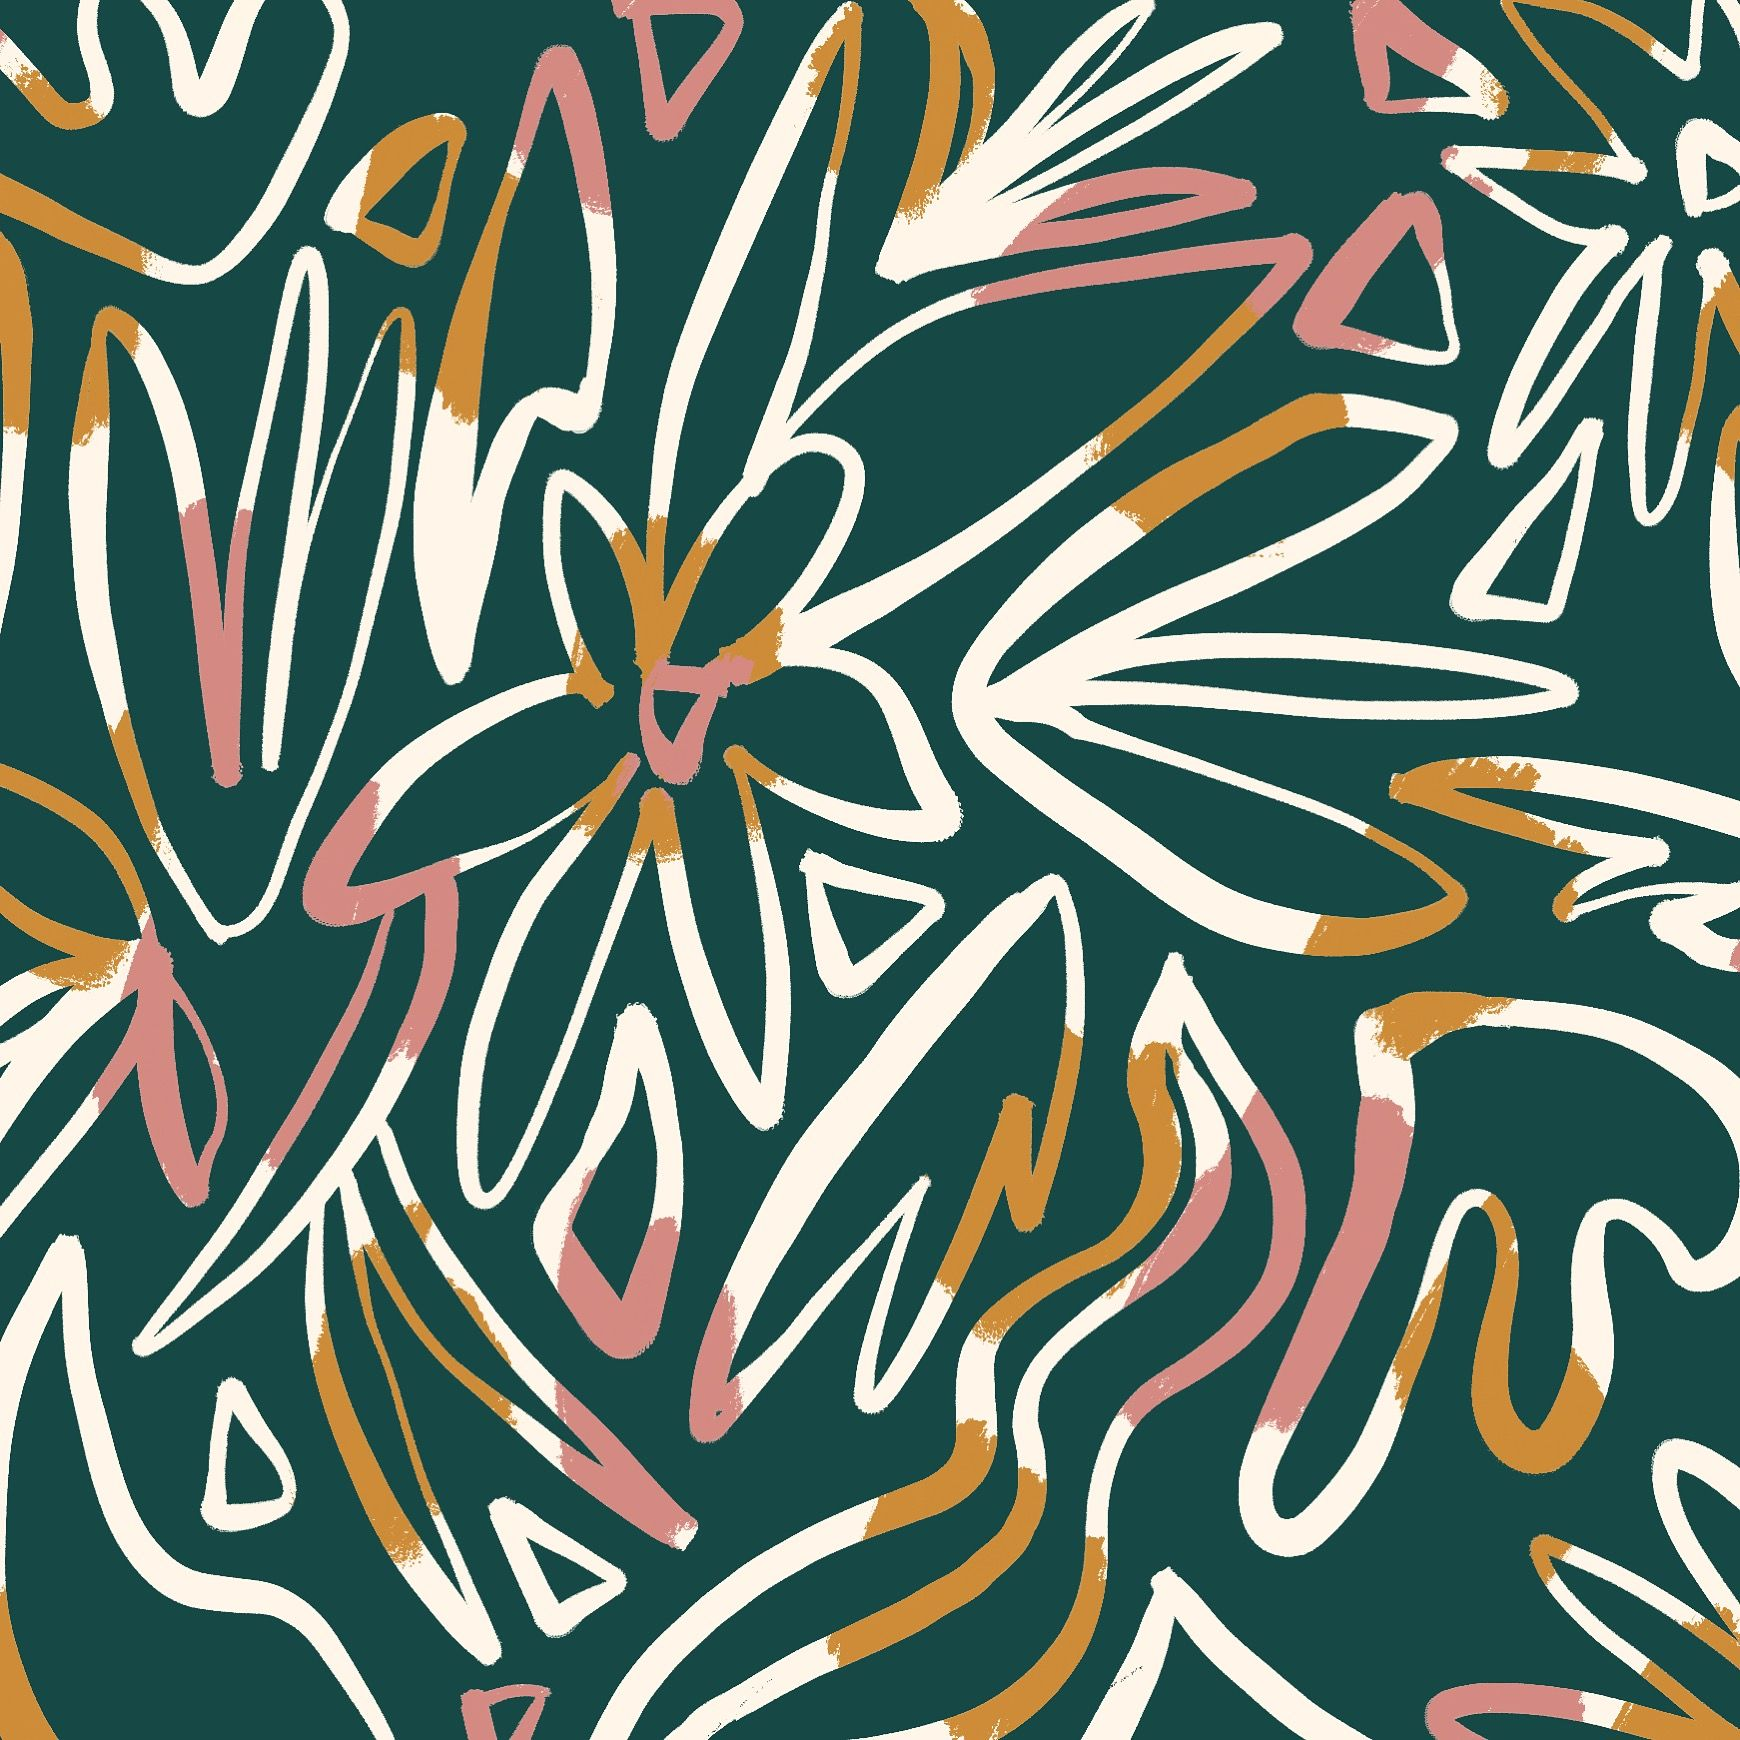 Pattern Design By Zoe Wodarz For Licensing Or Purchase